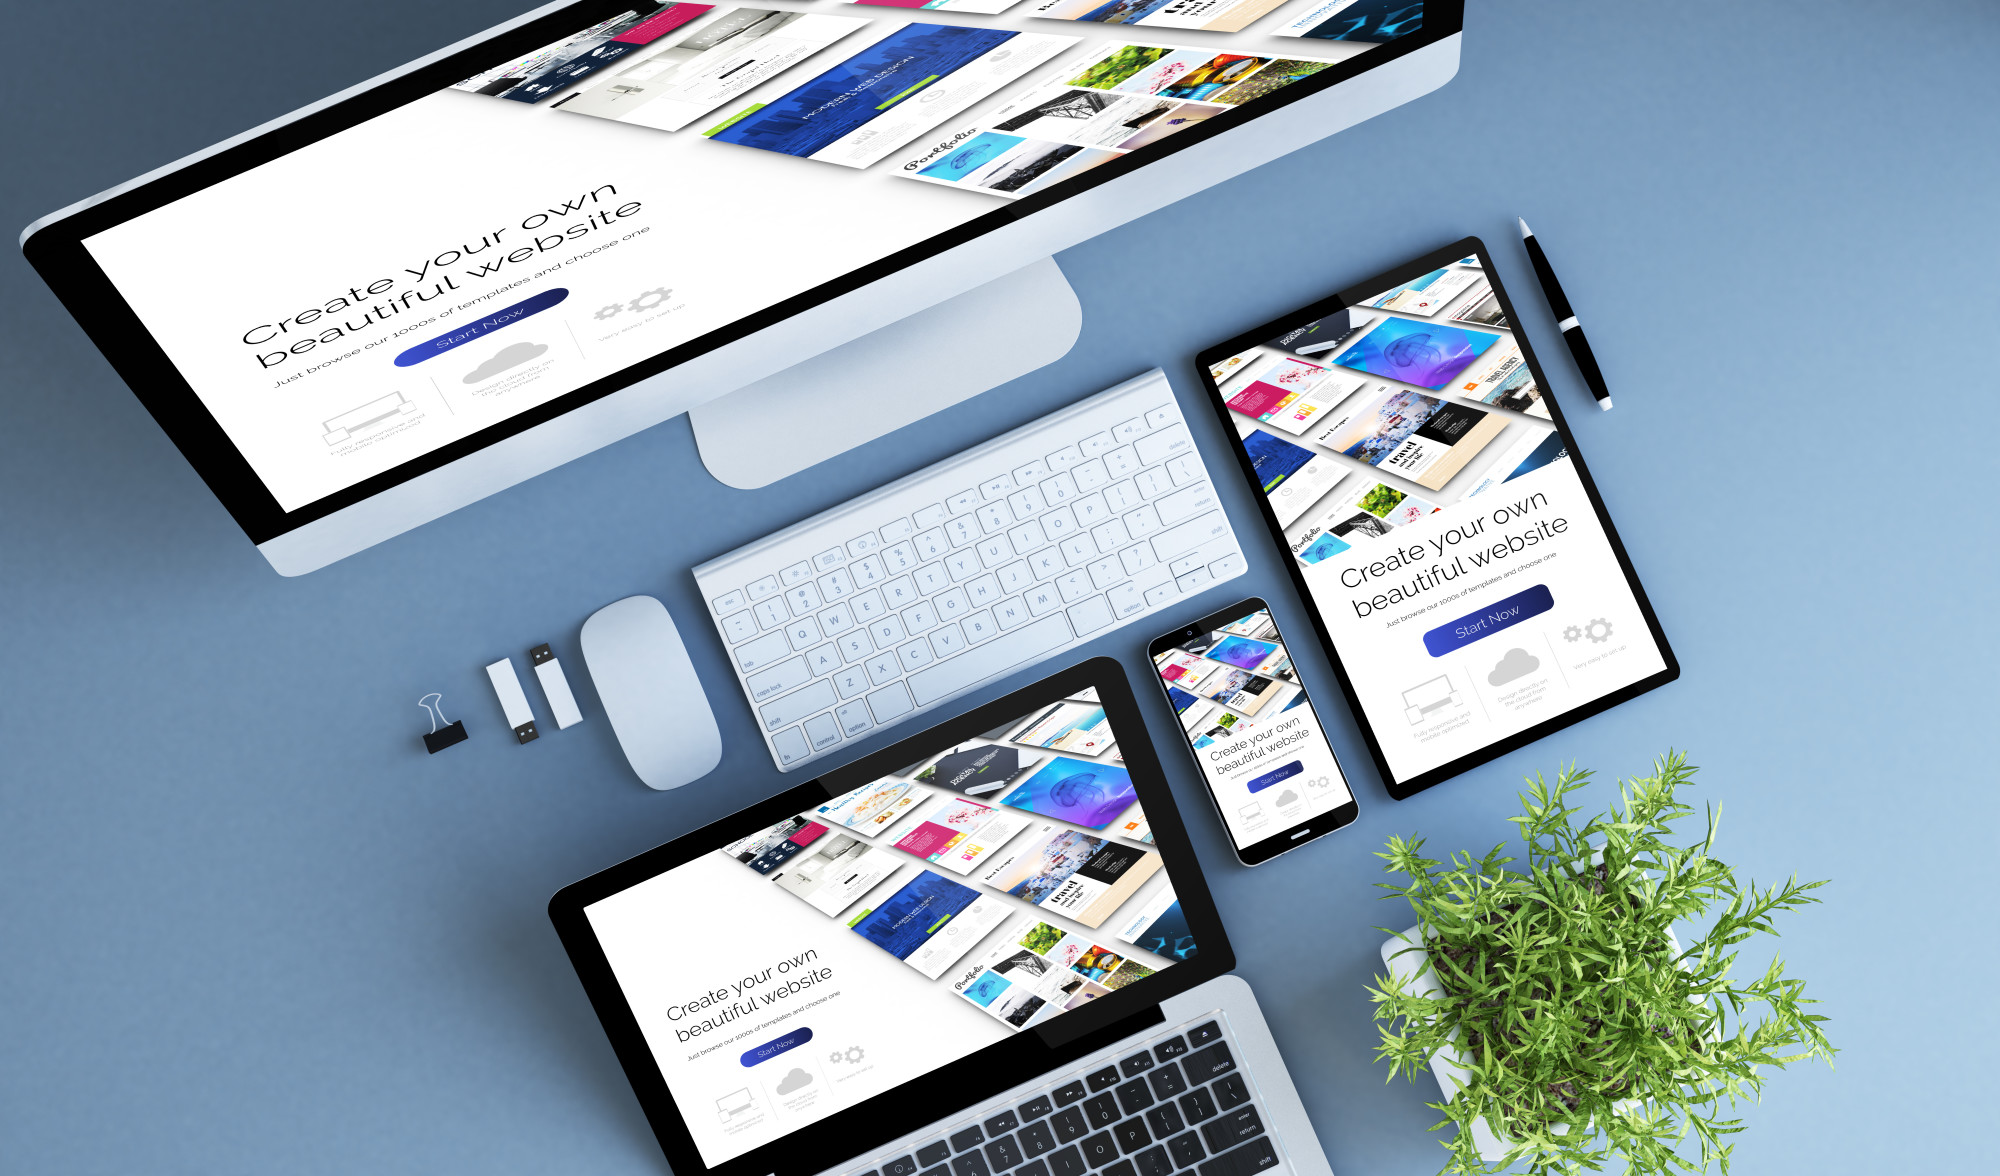 Web Design Matters: All About the Importance of Website Design